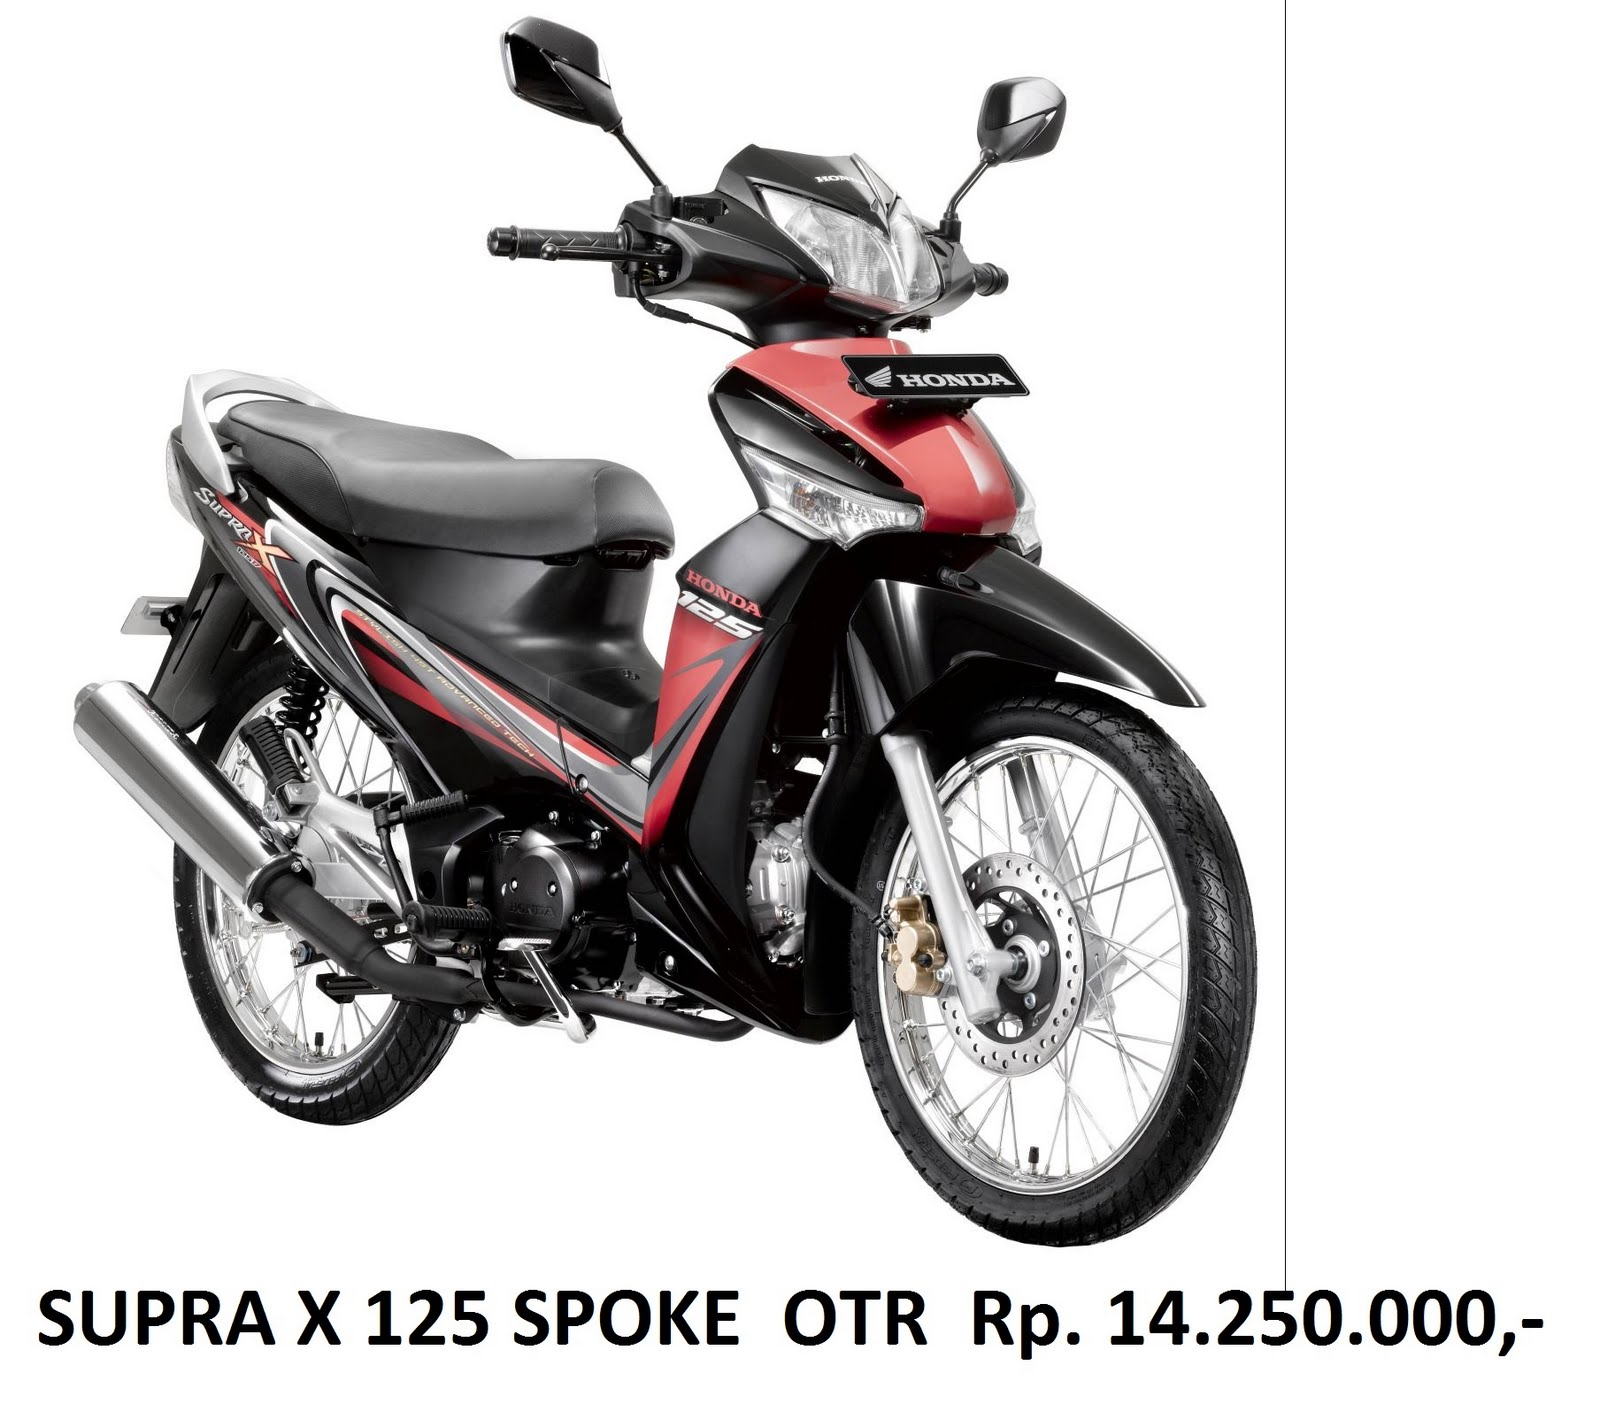 Harga Motor Honda Motor Honda Terbaru 2014 Related Keywords Suggestions Motor